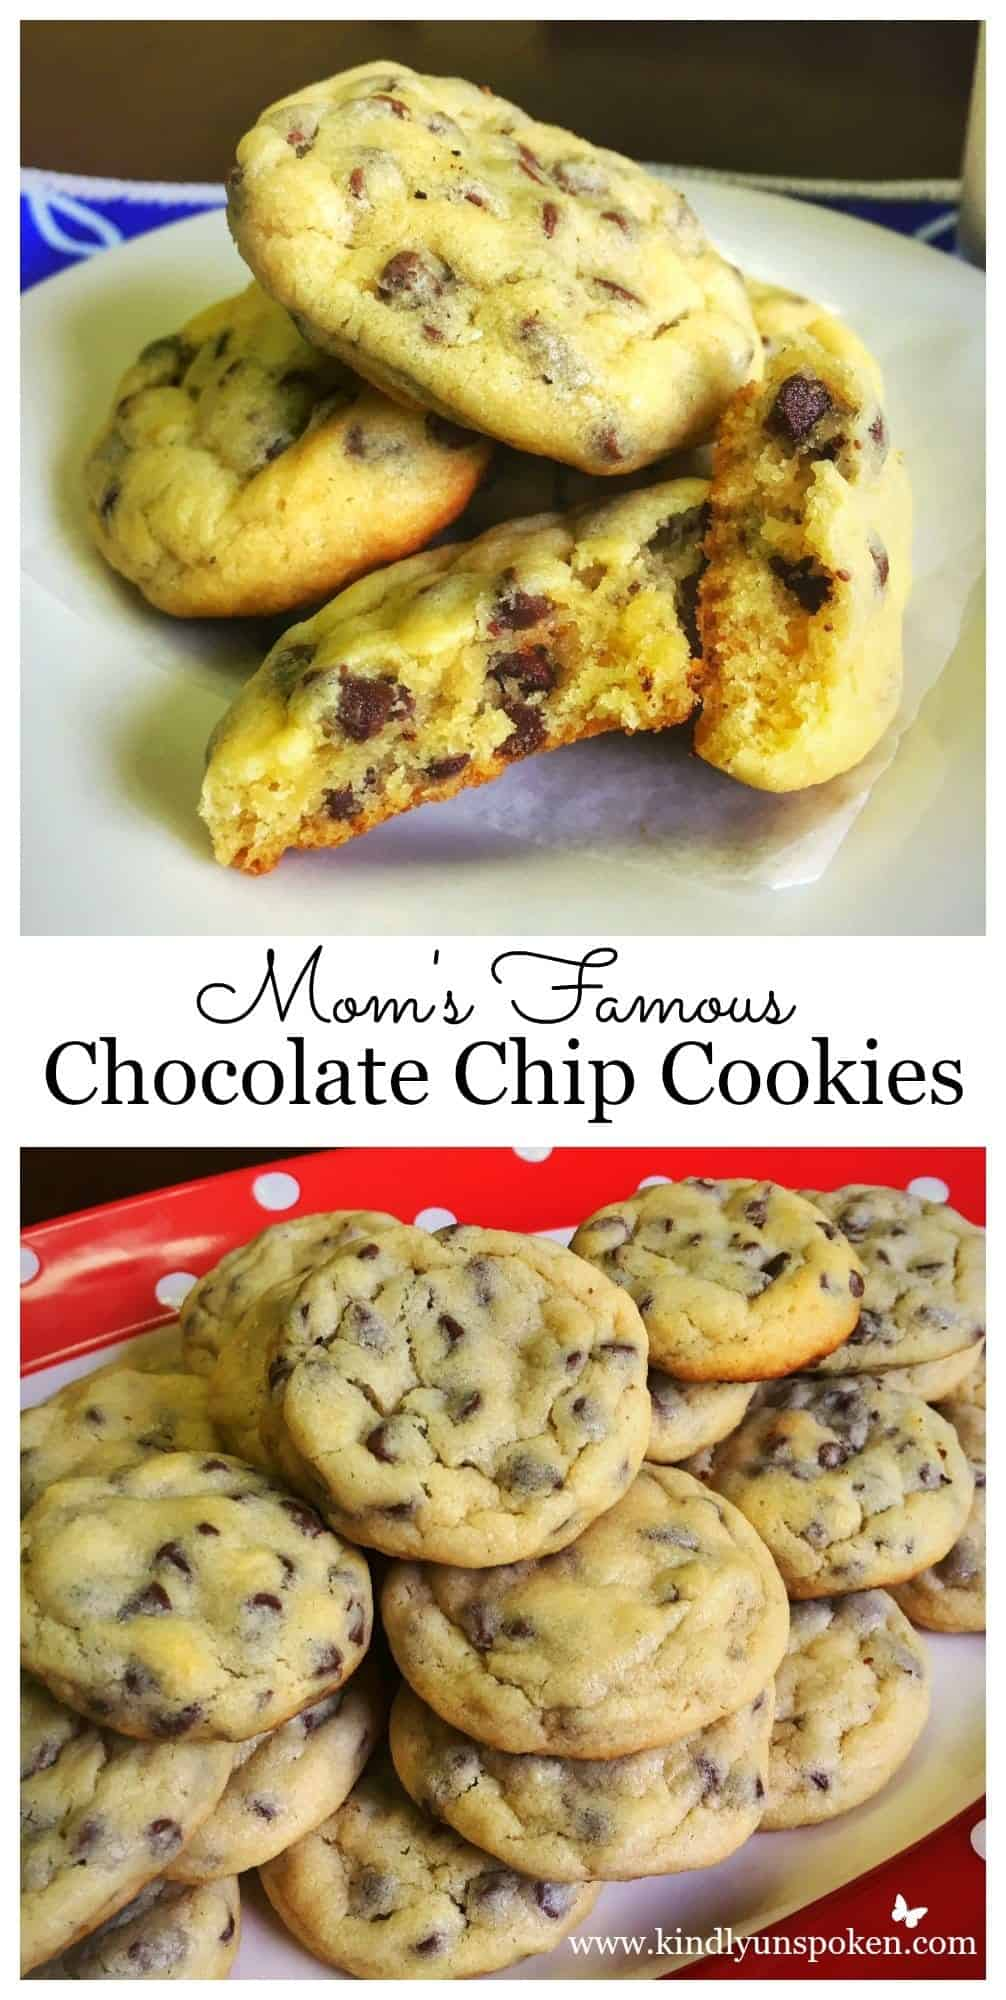 My Mom's Famous Easy Chocolate Chip Cookies recipe truly makes THE BEST chocolate chip cookies! These easy homemade chocolate chip cookies are made using self-rising flour and are soft, gooey, and absolutely delicious! Your family will request these cookies all the time. #cookies #chocolatechipcookies #dessert #recipe